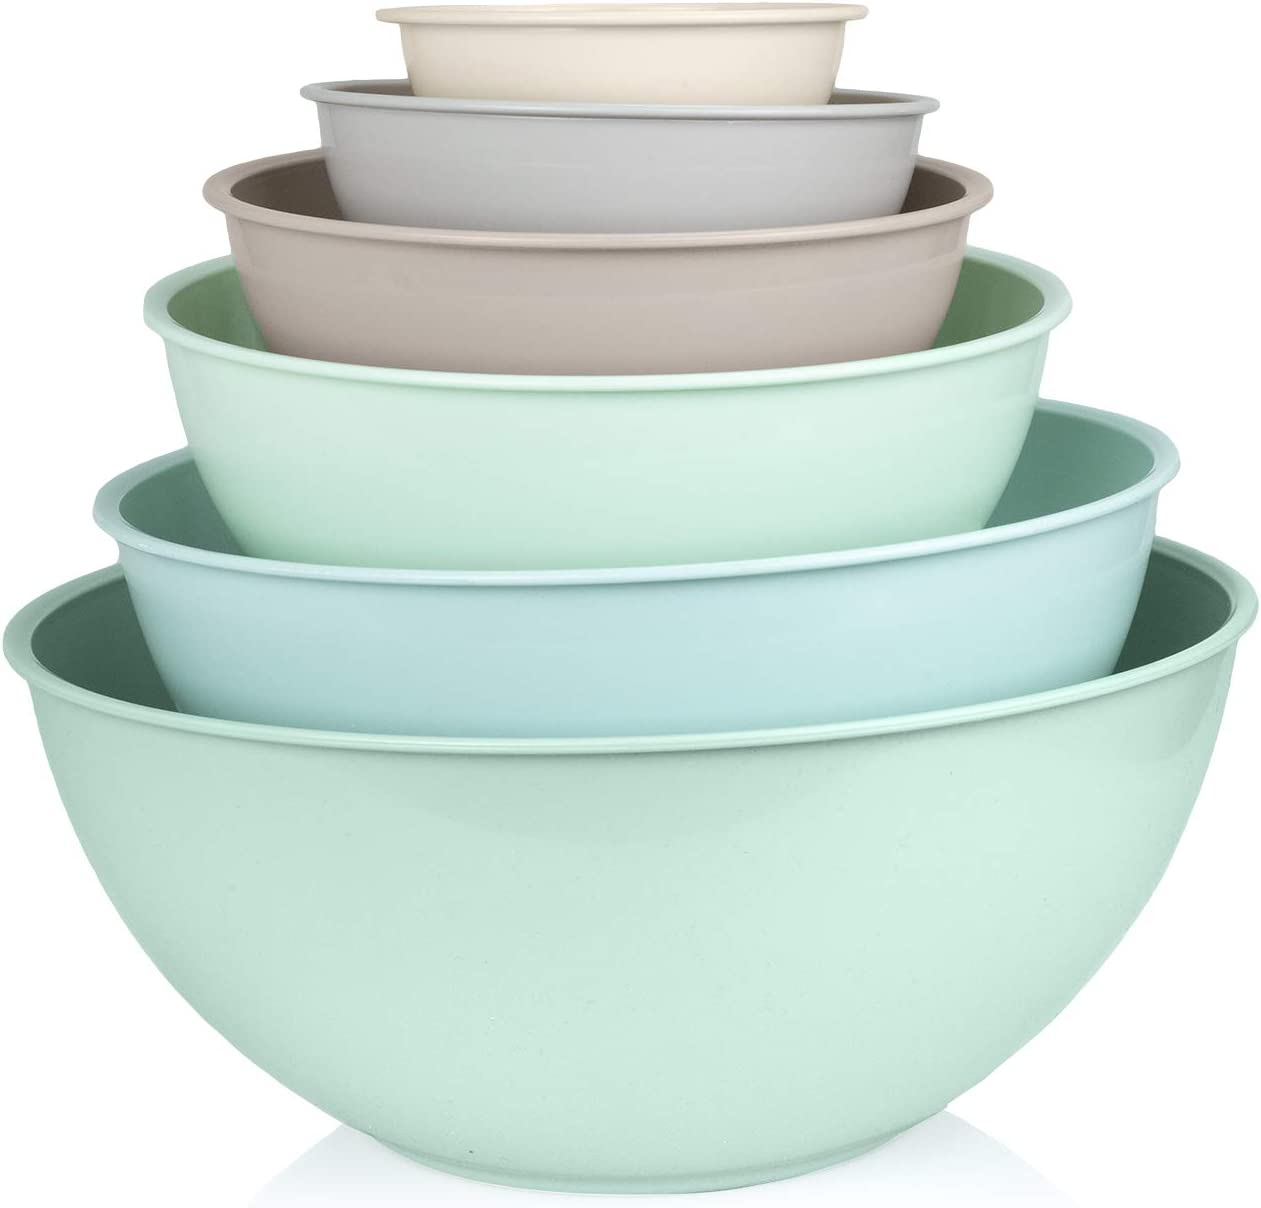 Cook with Color Mixing Bowls with Lids - 12 Piece Plastic Nesting Bowls Set includes 6 Prep Bowls and 6 Lids, Microwave Safe Mixing Bowl Set (Mint Ombre)